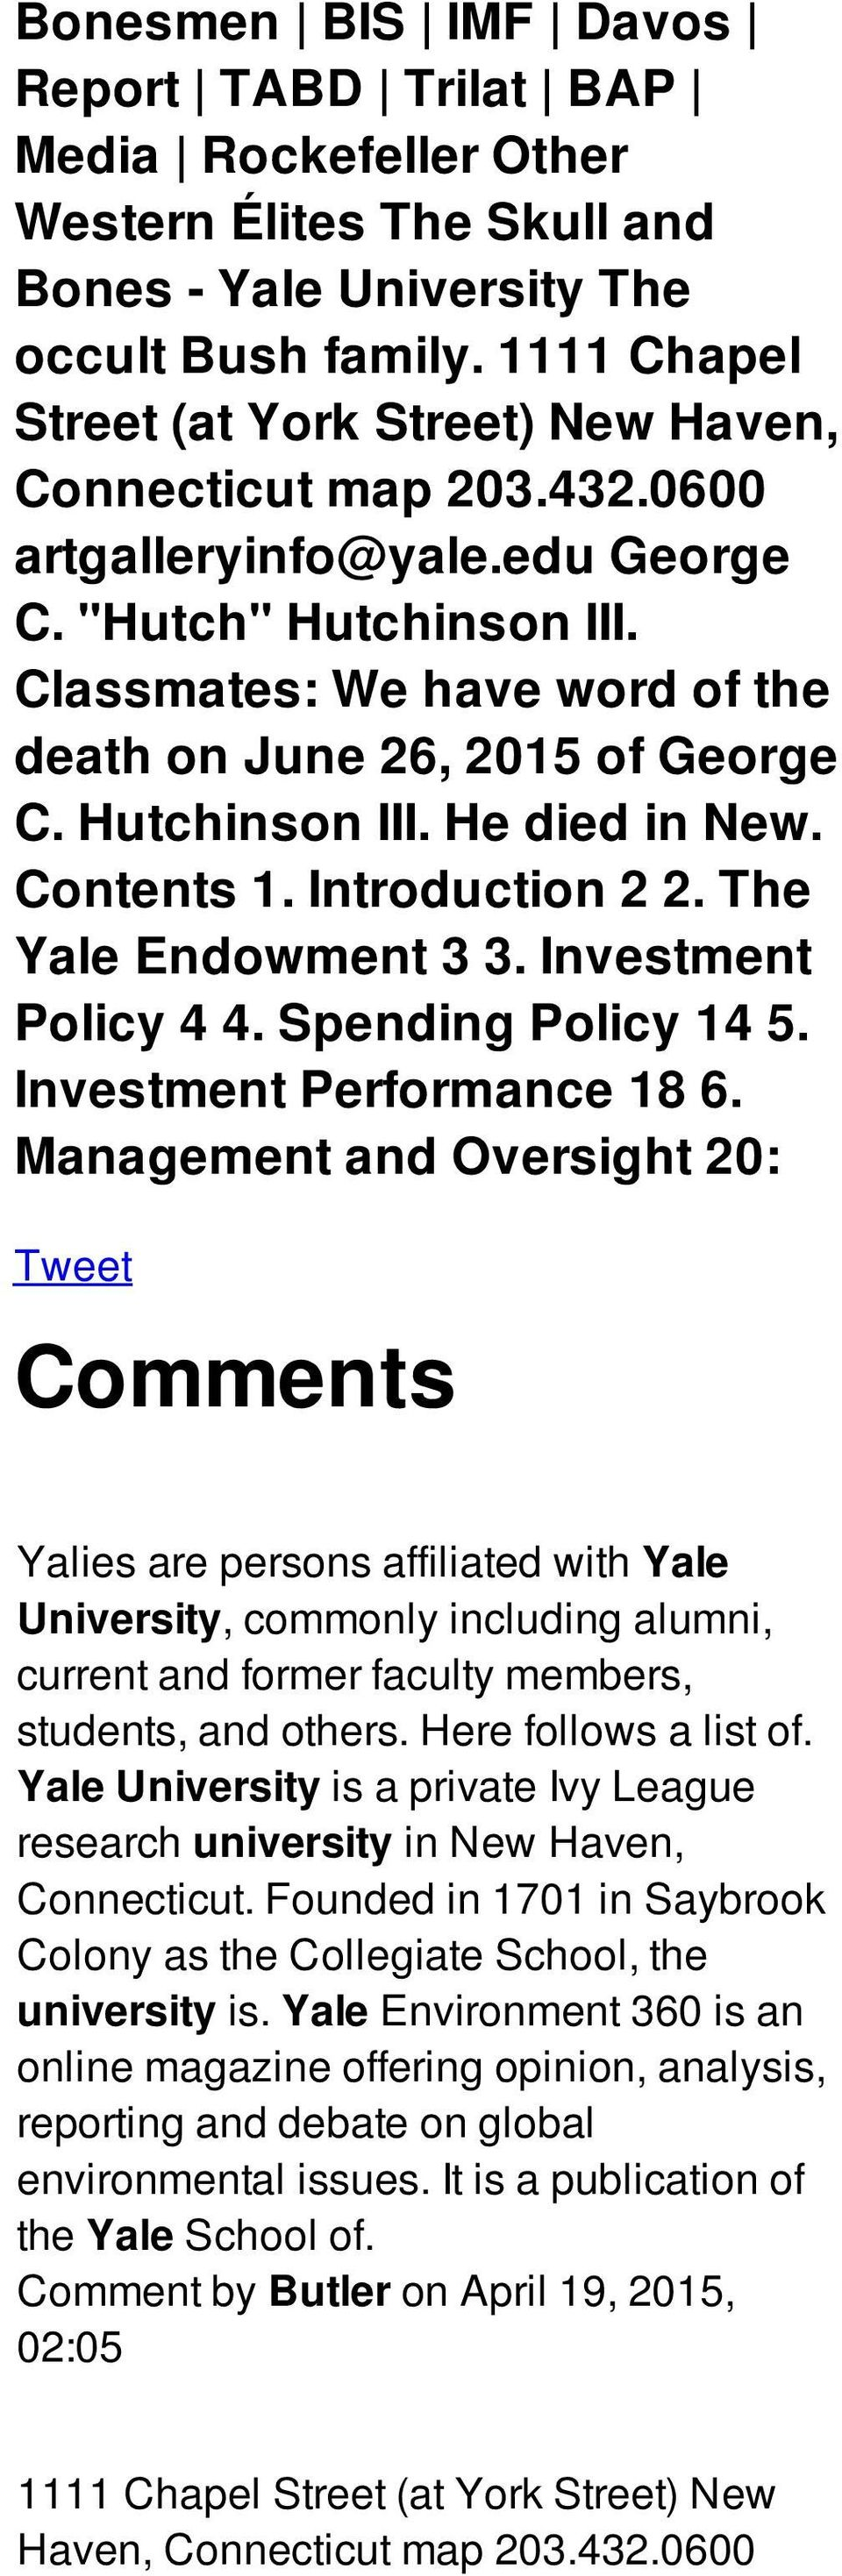 Classmates: We have word of the death on June 26, 2015 of George C. Hutchinson III. He died in New. Contents 1. Introduction 2 2. The Yale Endowment 3 3. Investment Policy 4 4. Spending Policy 14 5.